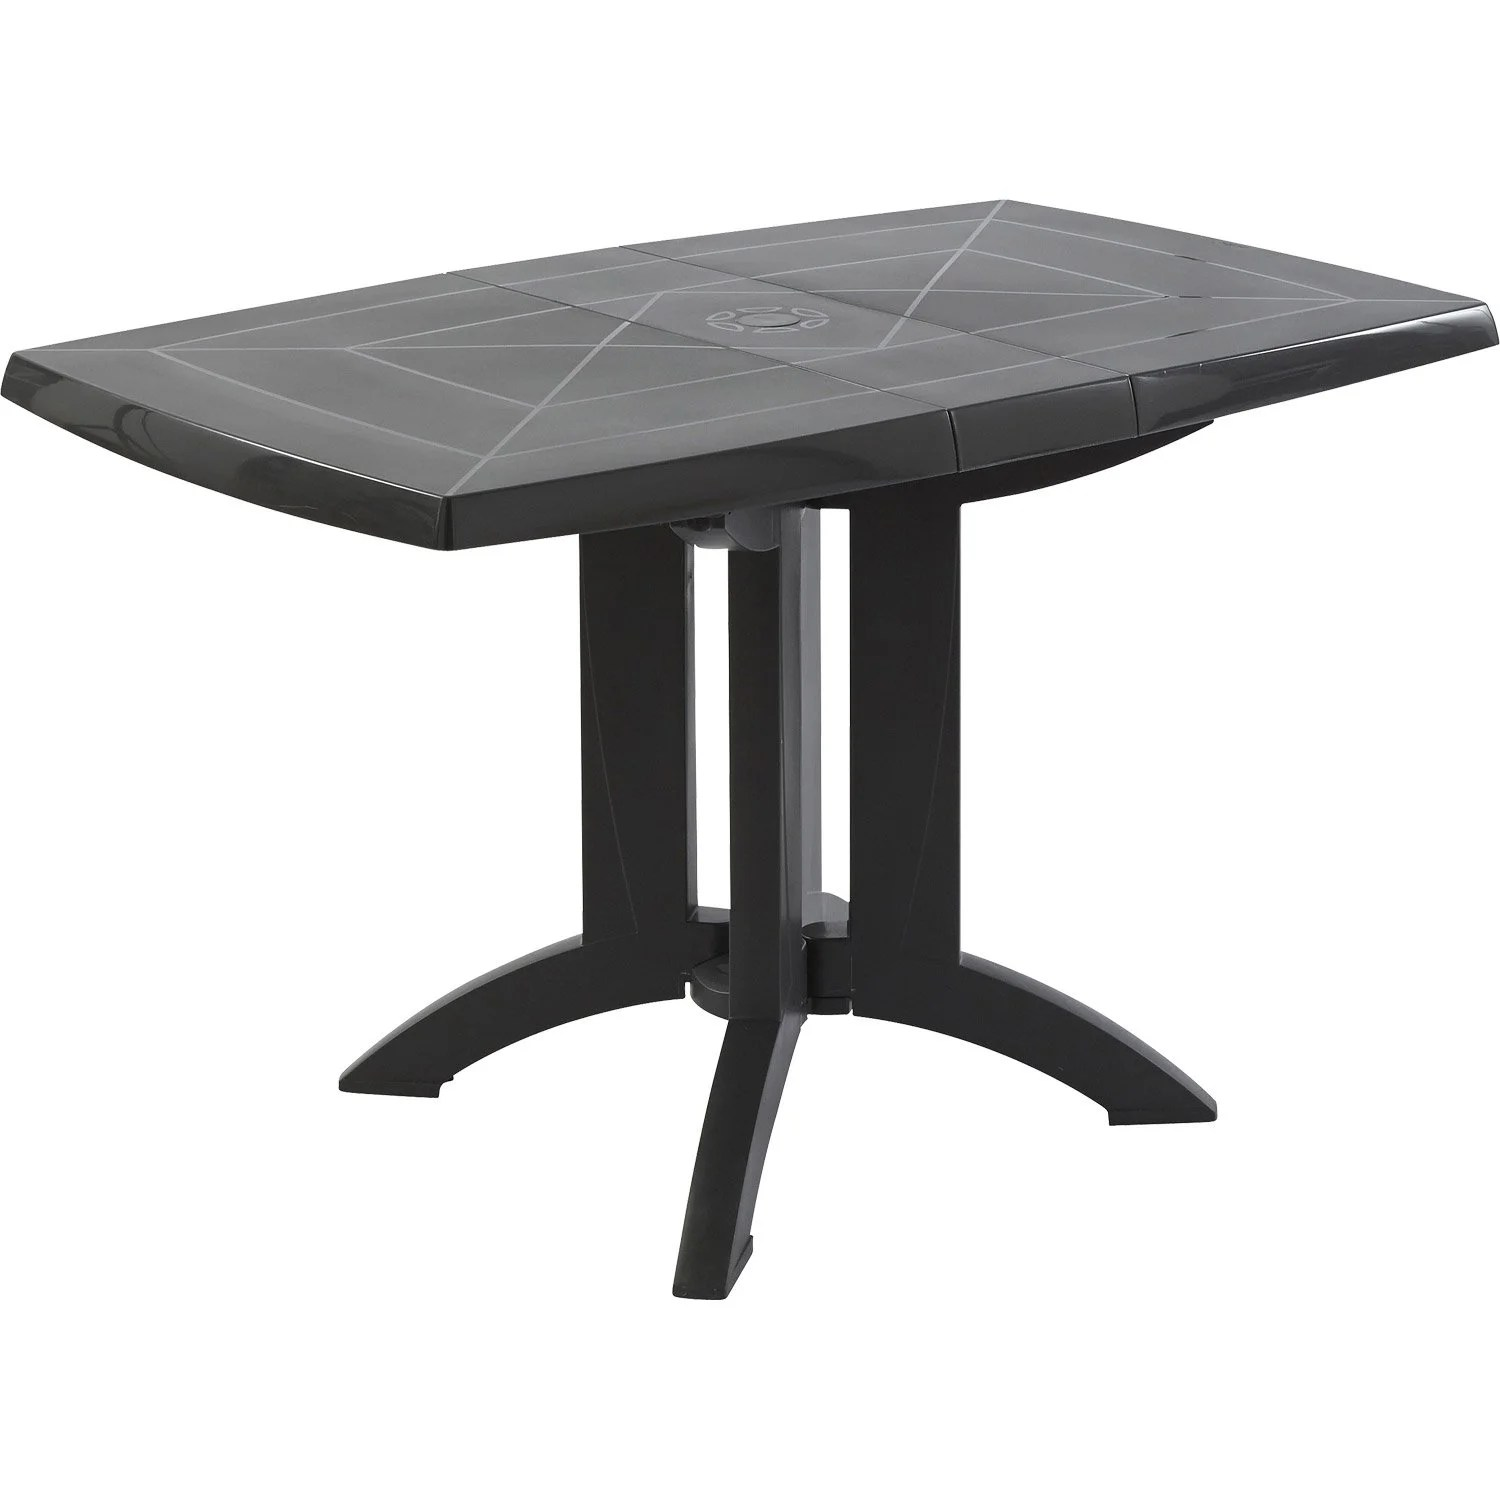 Table De Jardin Grosfillex Leroy Merlin Table De Jardin Grosfillex Véga Rectangulaire Anthracite 4